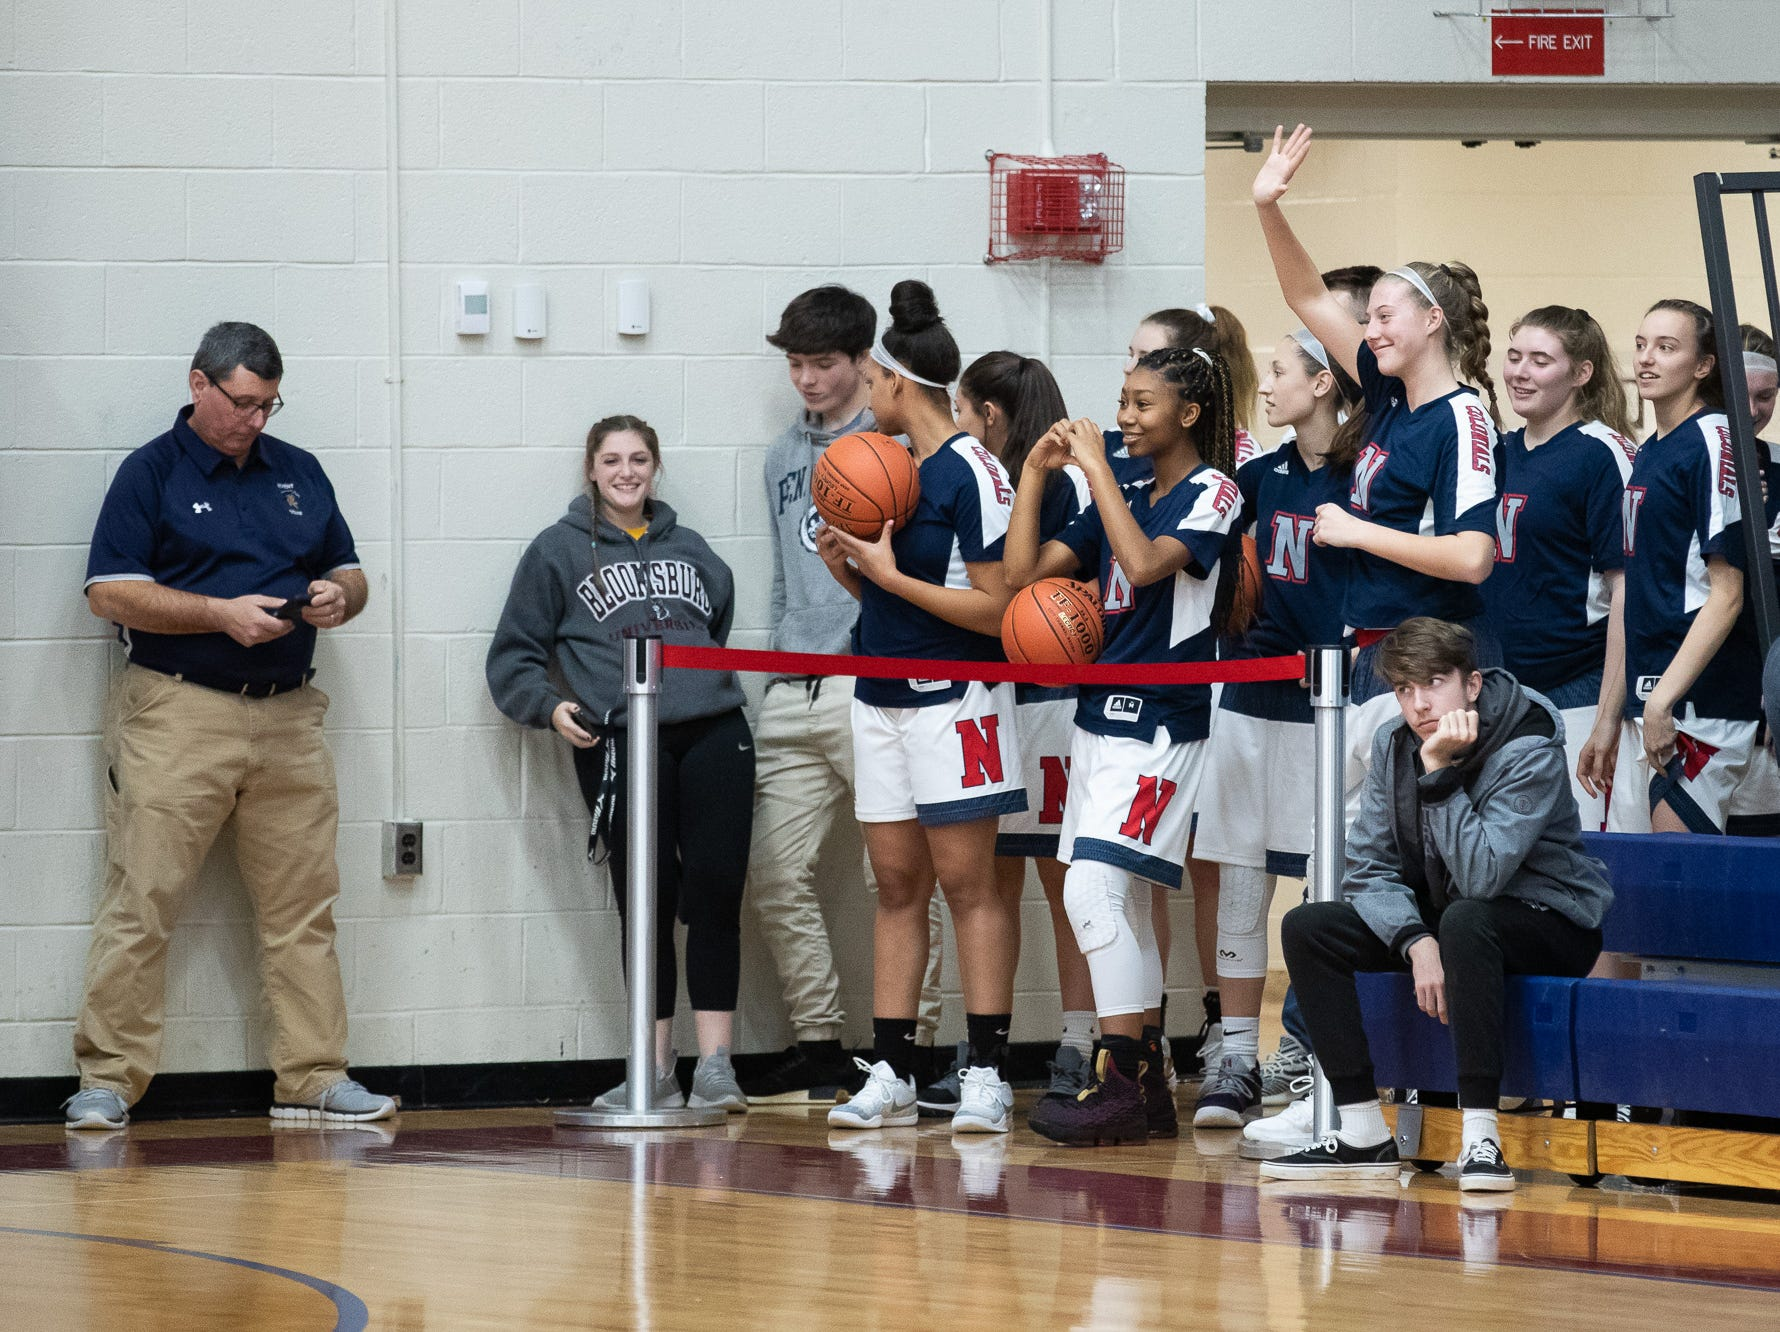 The New Oxford Lady Colonials wave to spectators while they watch the consolation game between Bermudian Springs and York Suburban during the New Oxford Girls Basketball Tip-Off Tournament, Saturday, Dec. 8, 2018, in New Oxford. The Bermudian Springs Lady Eagles defeated the York Suburban Lady Trojans 60-58.